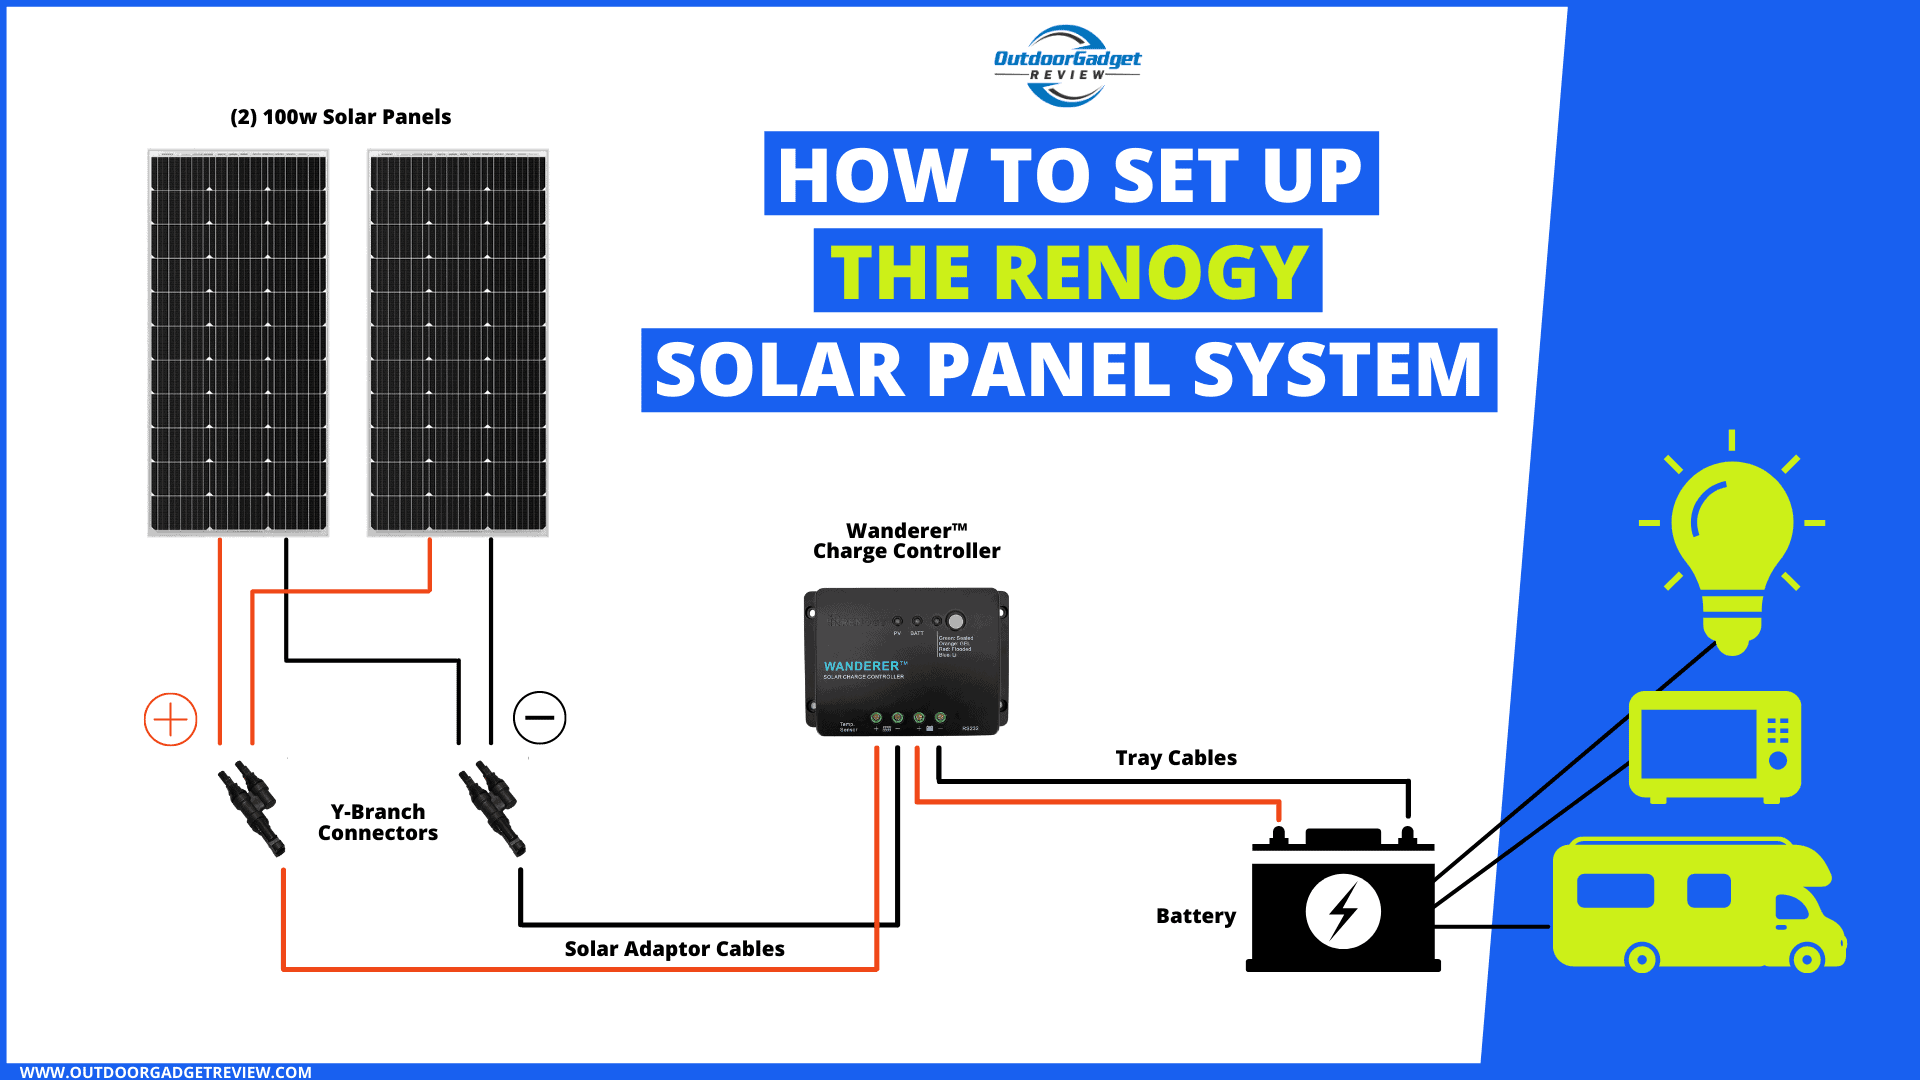 How to Set Up the Renogy Solar Panel System